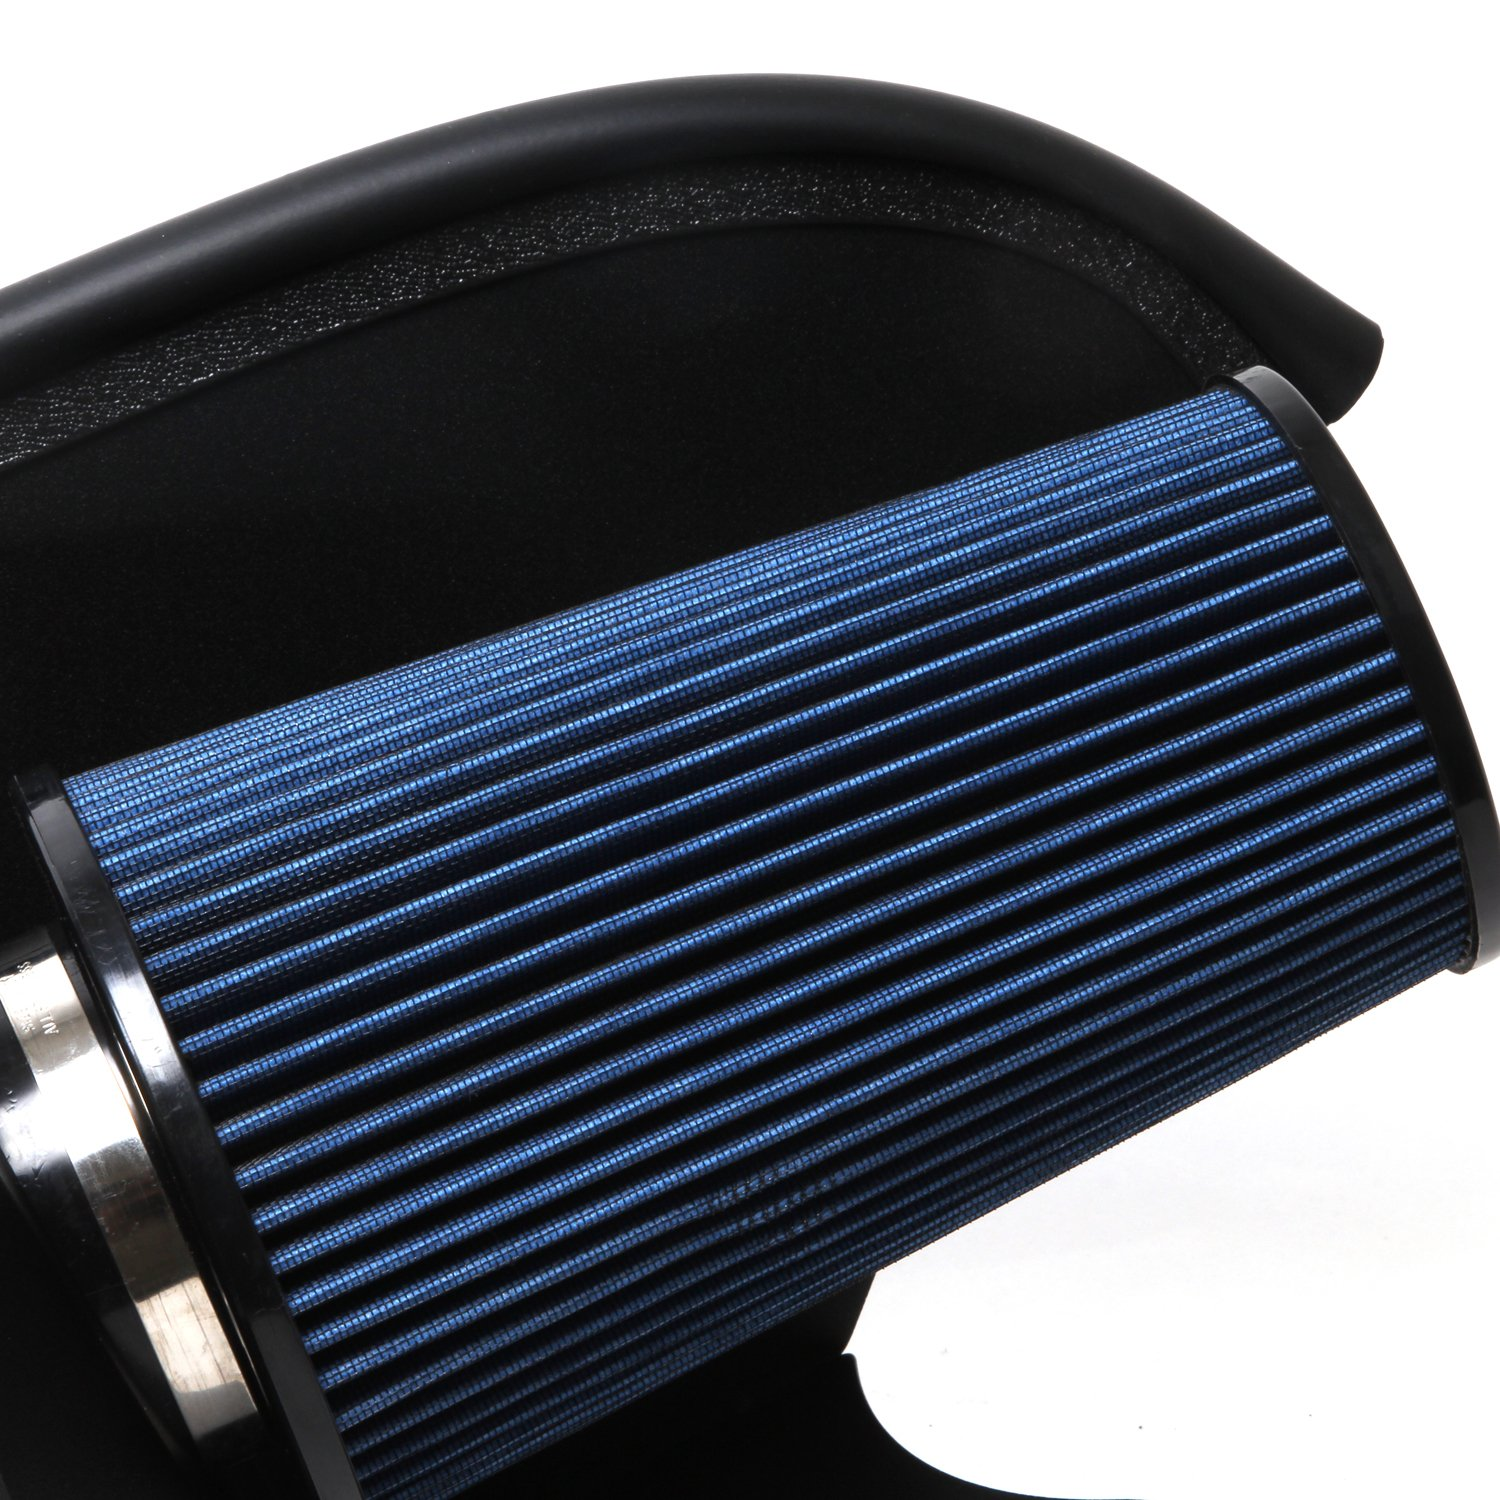 BBK 1737 Cold Air Intake System - Power Plus Series Performance Kit for Ford Mustang 4.0L V6 Chrome Finish by BBK Performance (Image #1)